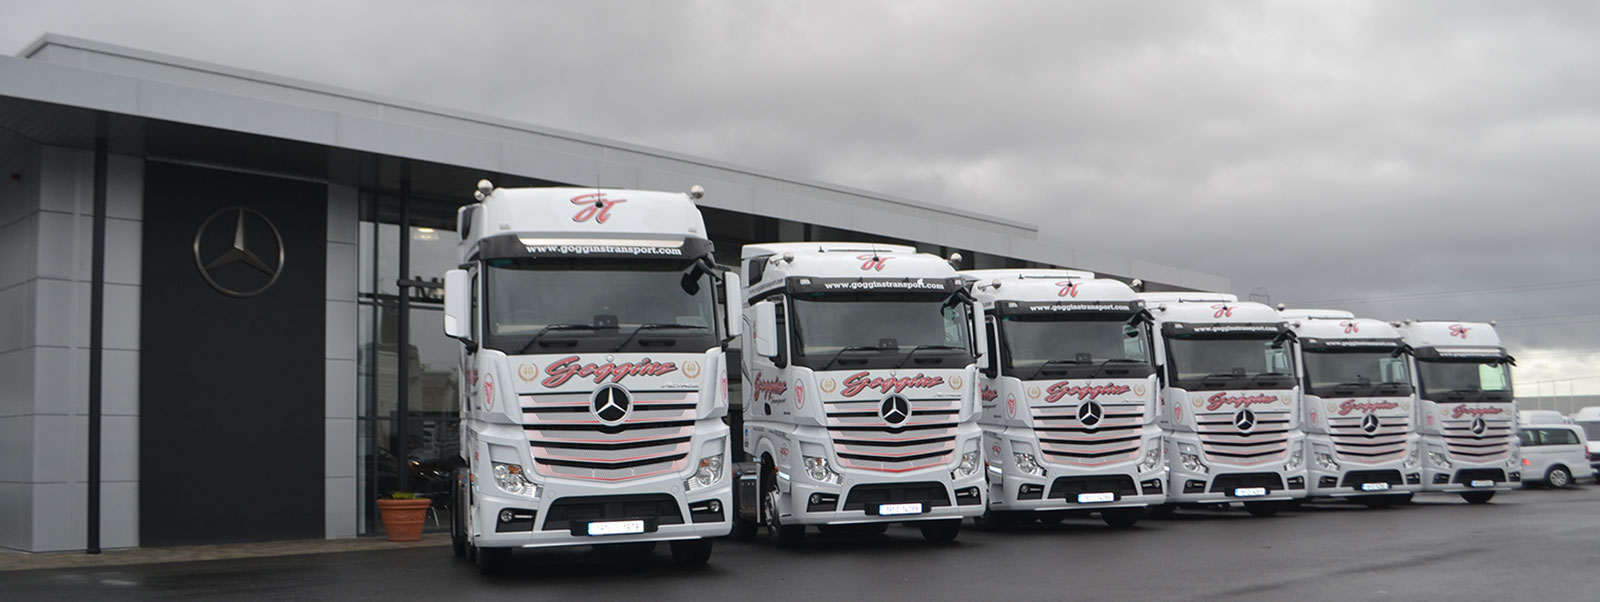 Providing Transport + Logistic Services for over 30 Years between Ireland, the UK + mainland Europe